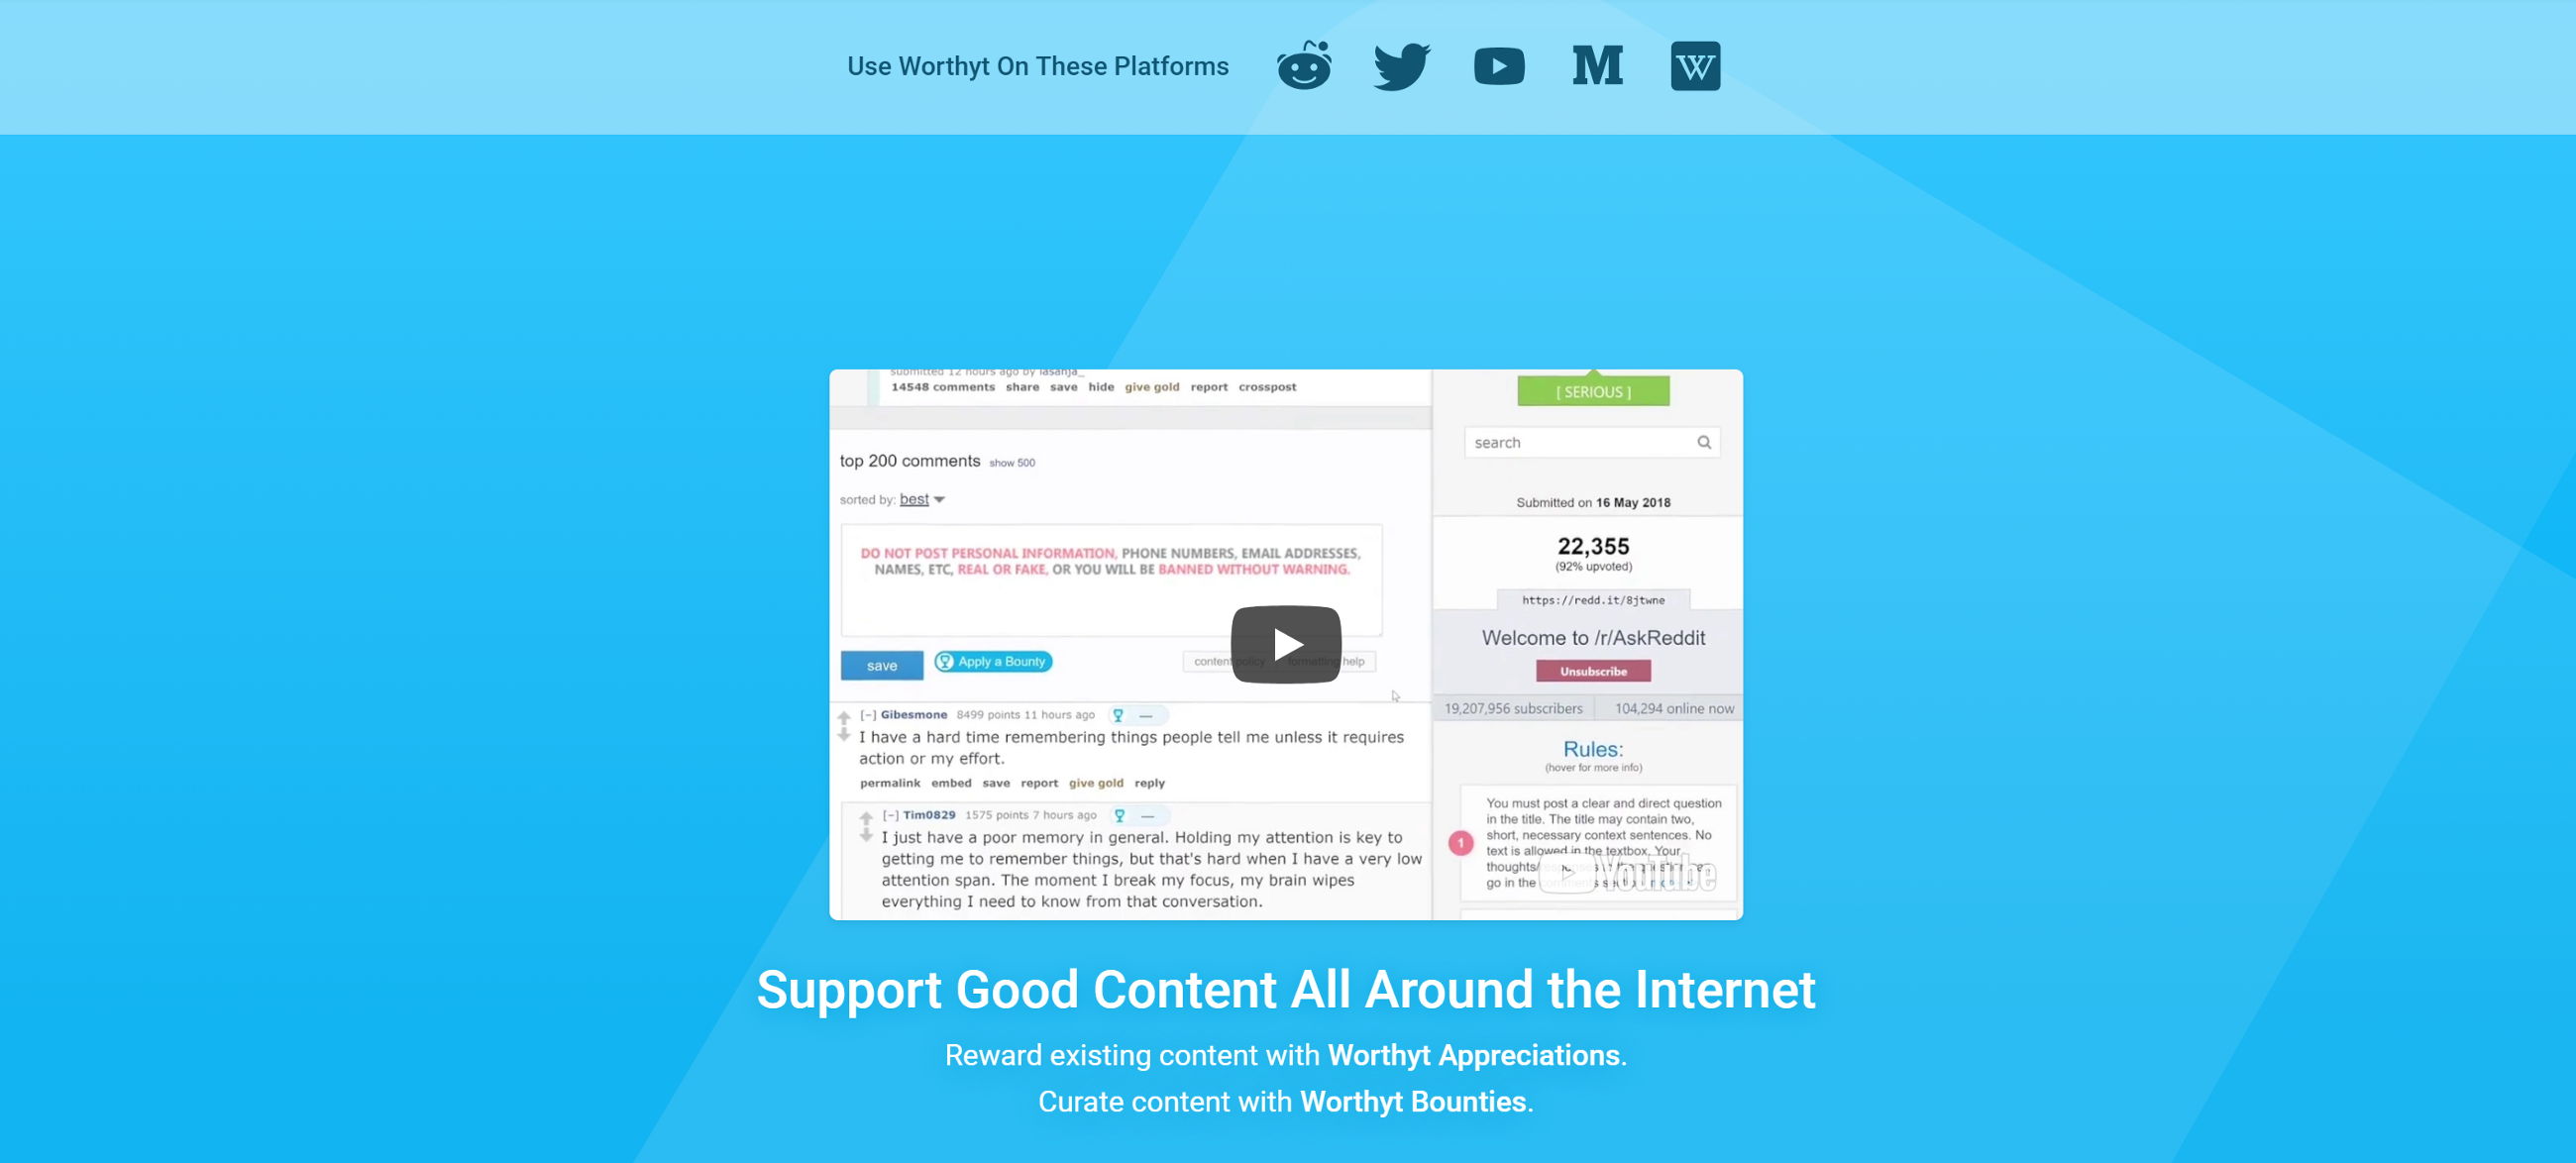 /you-can-directly-support-content-all-over-the-internet-706072f301b feature image